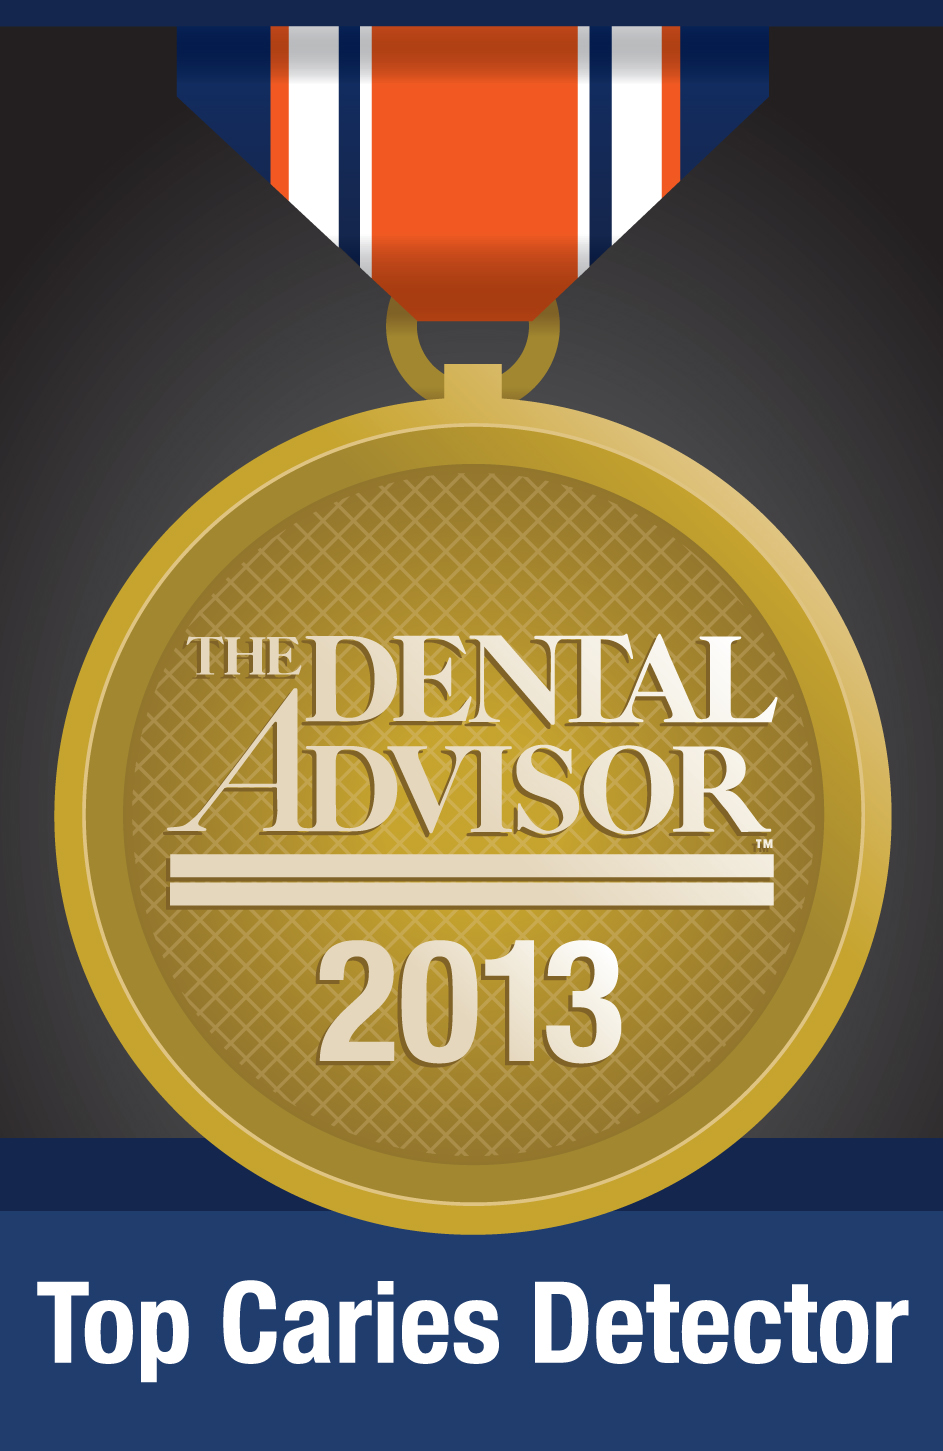 https://www.airtechniques.com/wp-content/uploads/dental-advisor-2013.jpg